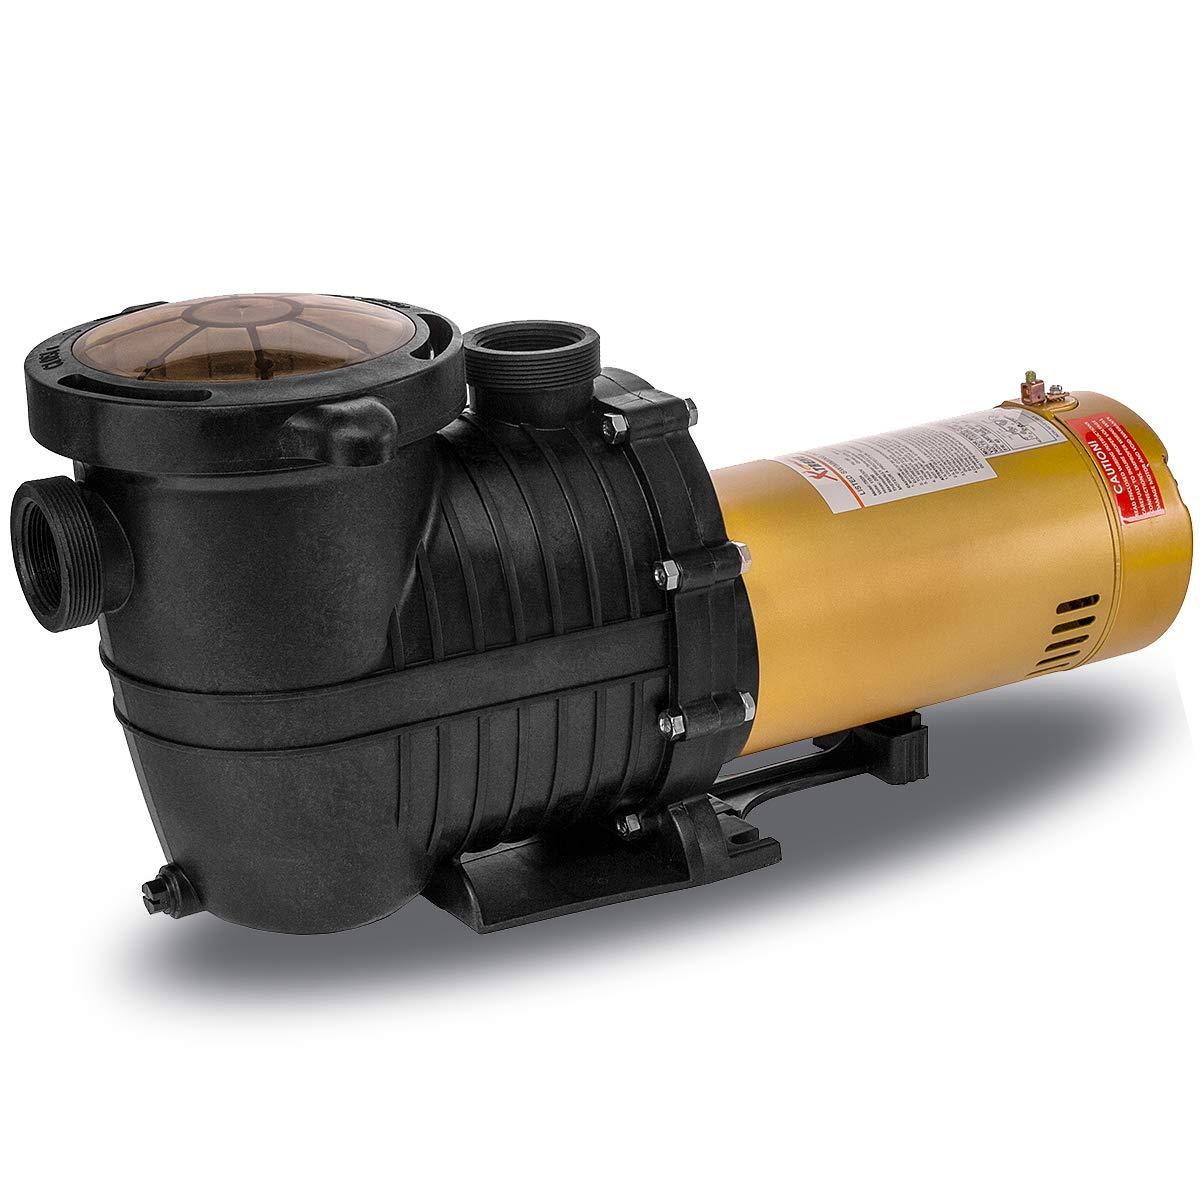 "XtremepowerUS 1.5HP Inground Pool Pump 5280GPH 1.5"" NPT Inlet/Outlet 115V Dual Watt"